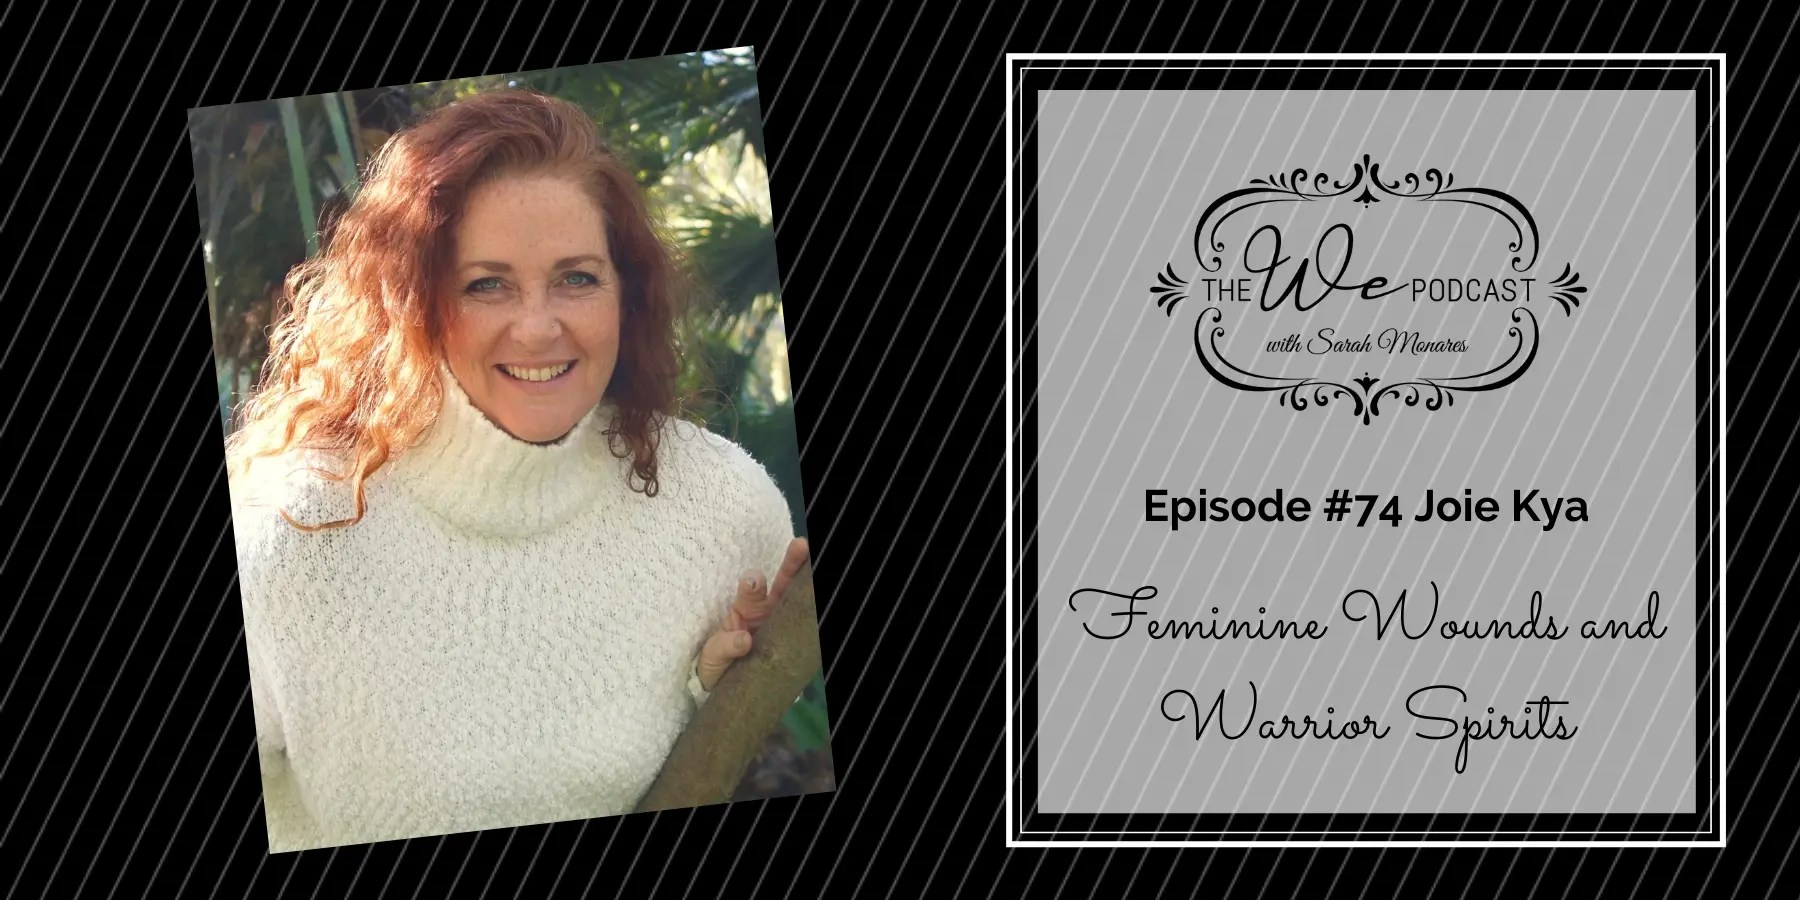 The We Podcast #74: Joie Kya- Feminine Wounds and Warrior Spirits